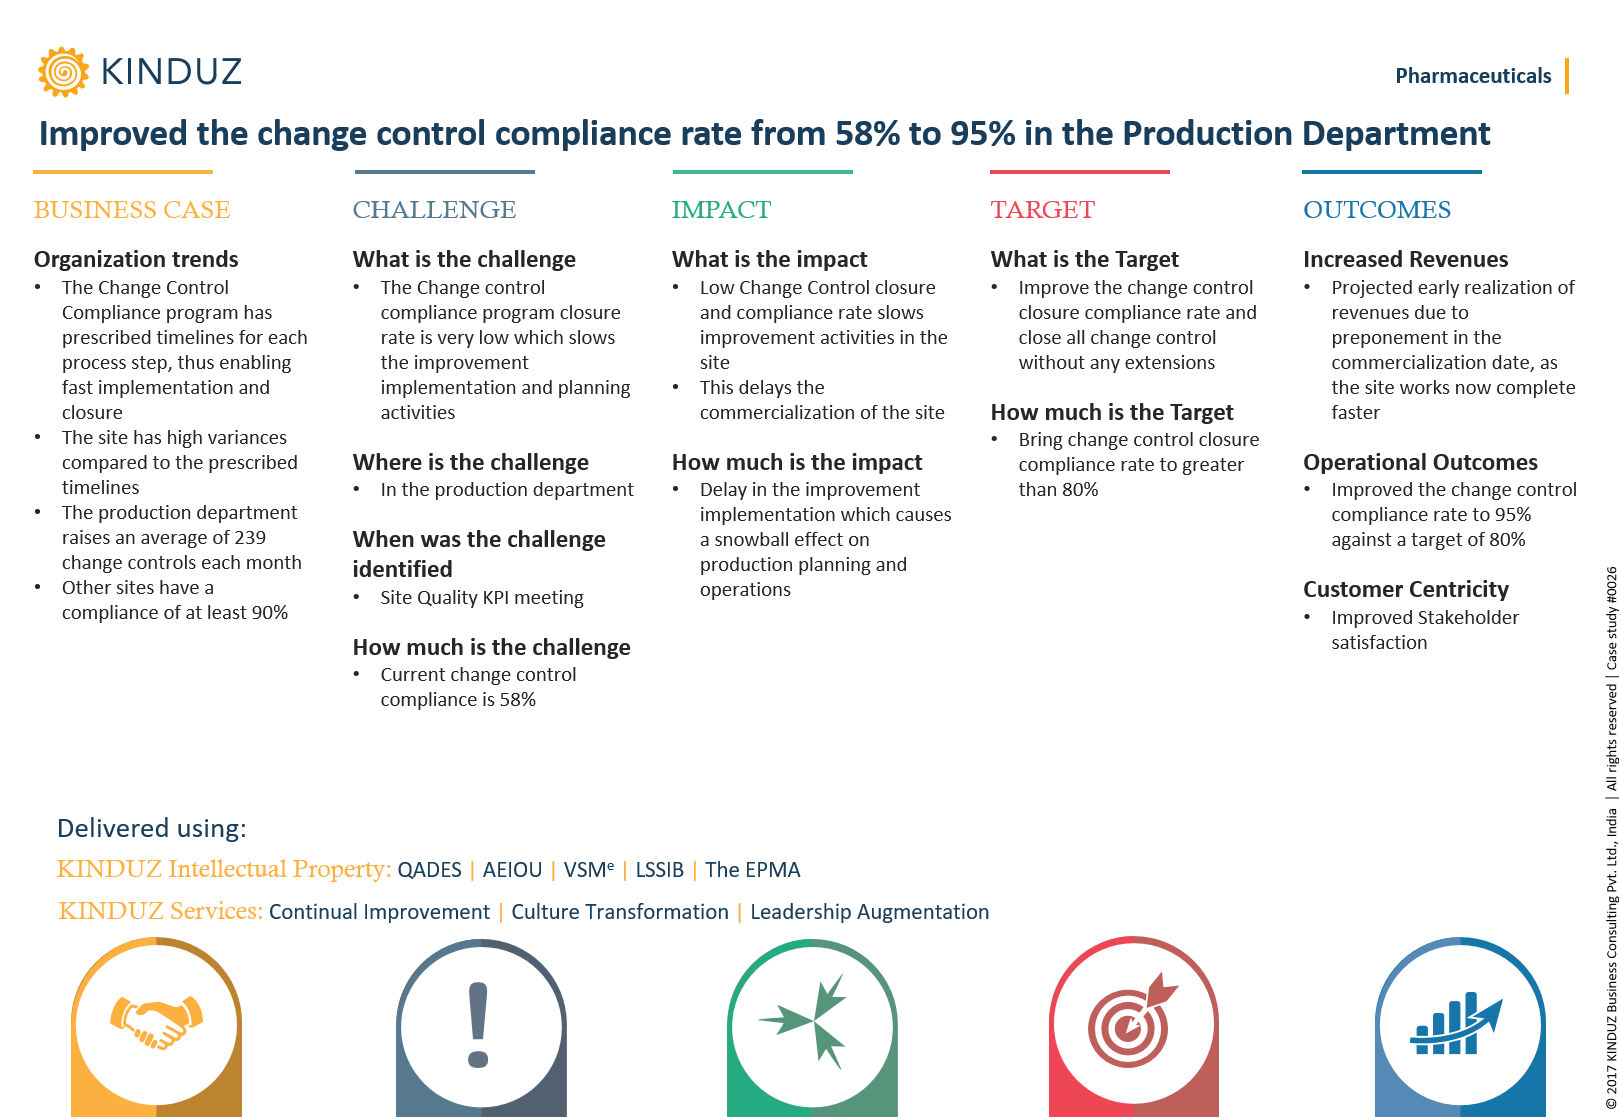 improved-the-change-control-compliance-rate-from-58-to-95-in-the-production-department